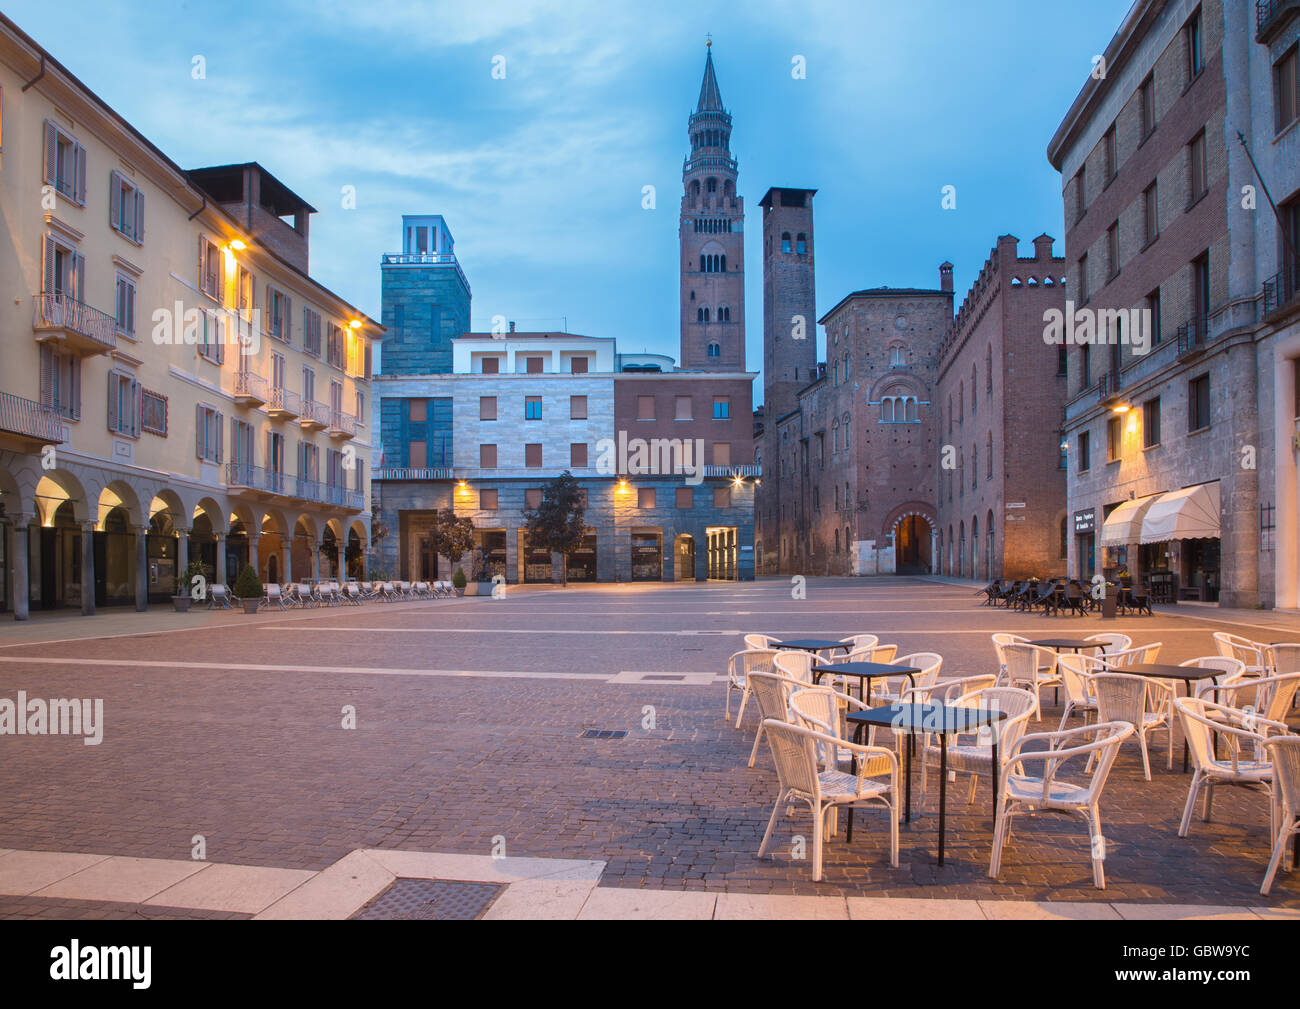 CREMONA, ITALY - MAY 24, 2016: The Piazza Cavour square at dusk. - Stock Image